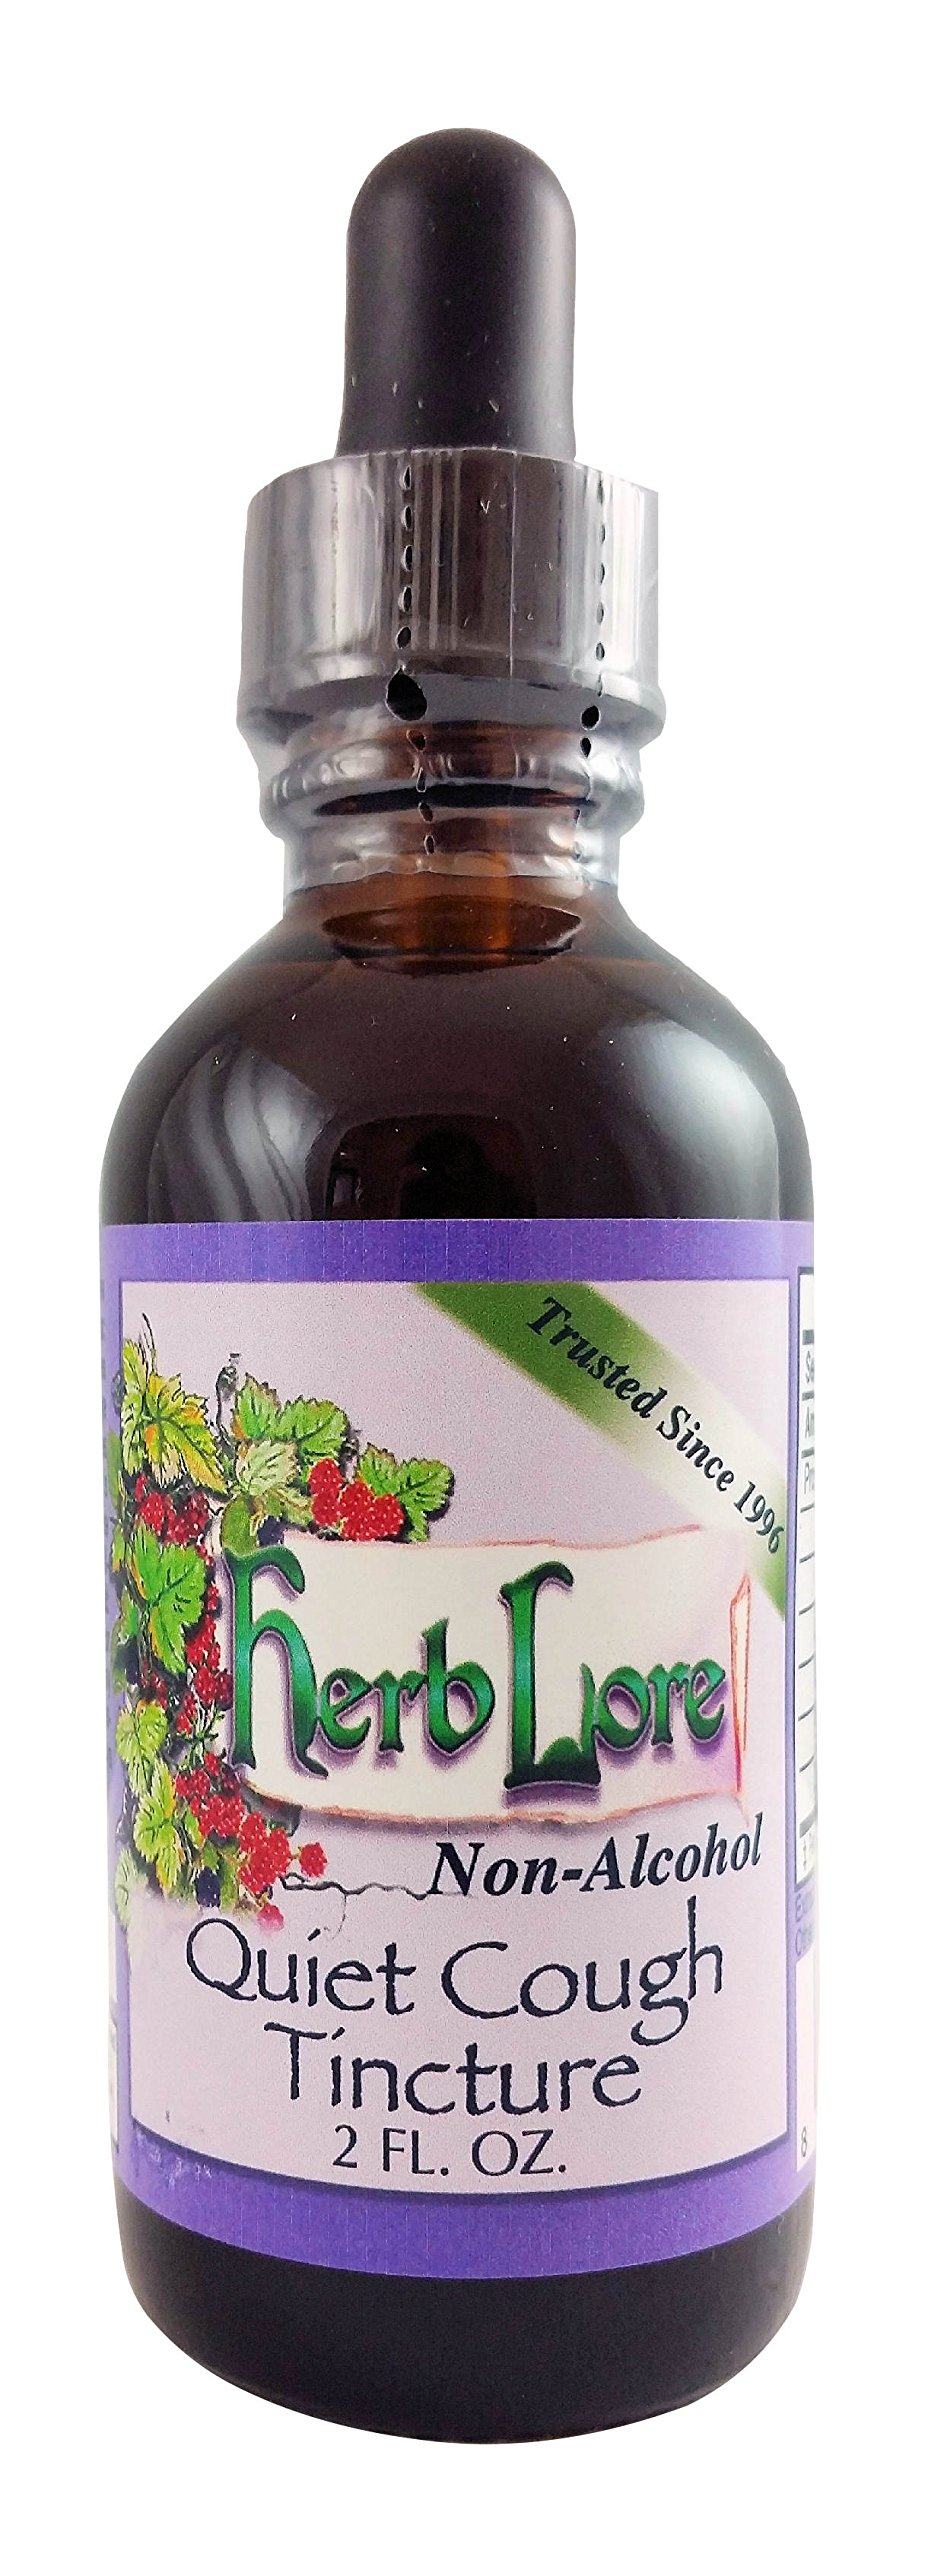 Herb Lore Organic Quiet Cough Tincture - Non-Alcohol (2 Ounce) - All Natural Herbal Cough Medicine for Children and Adults